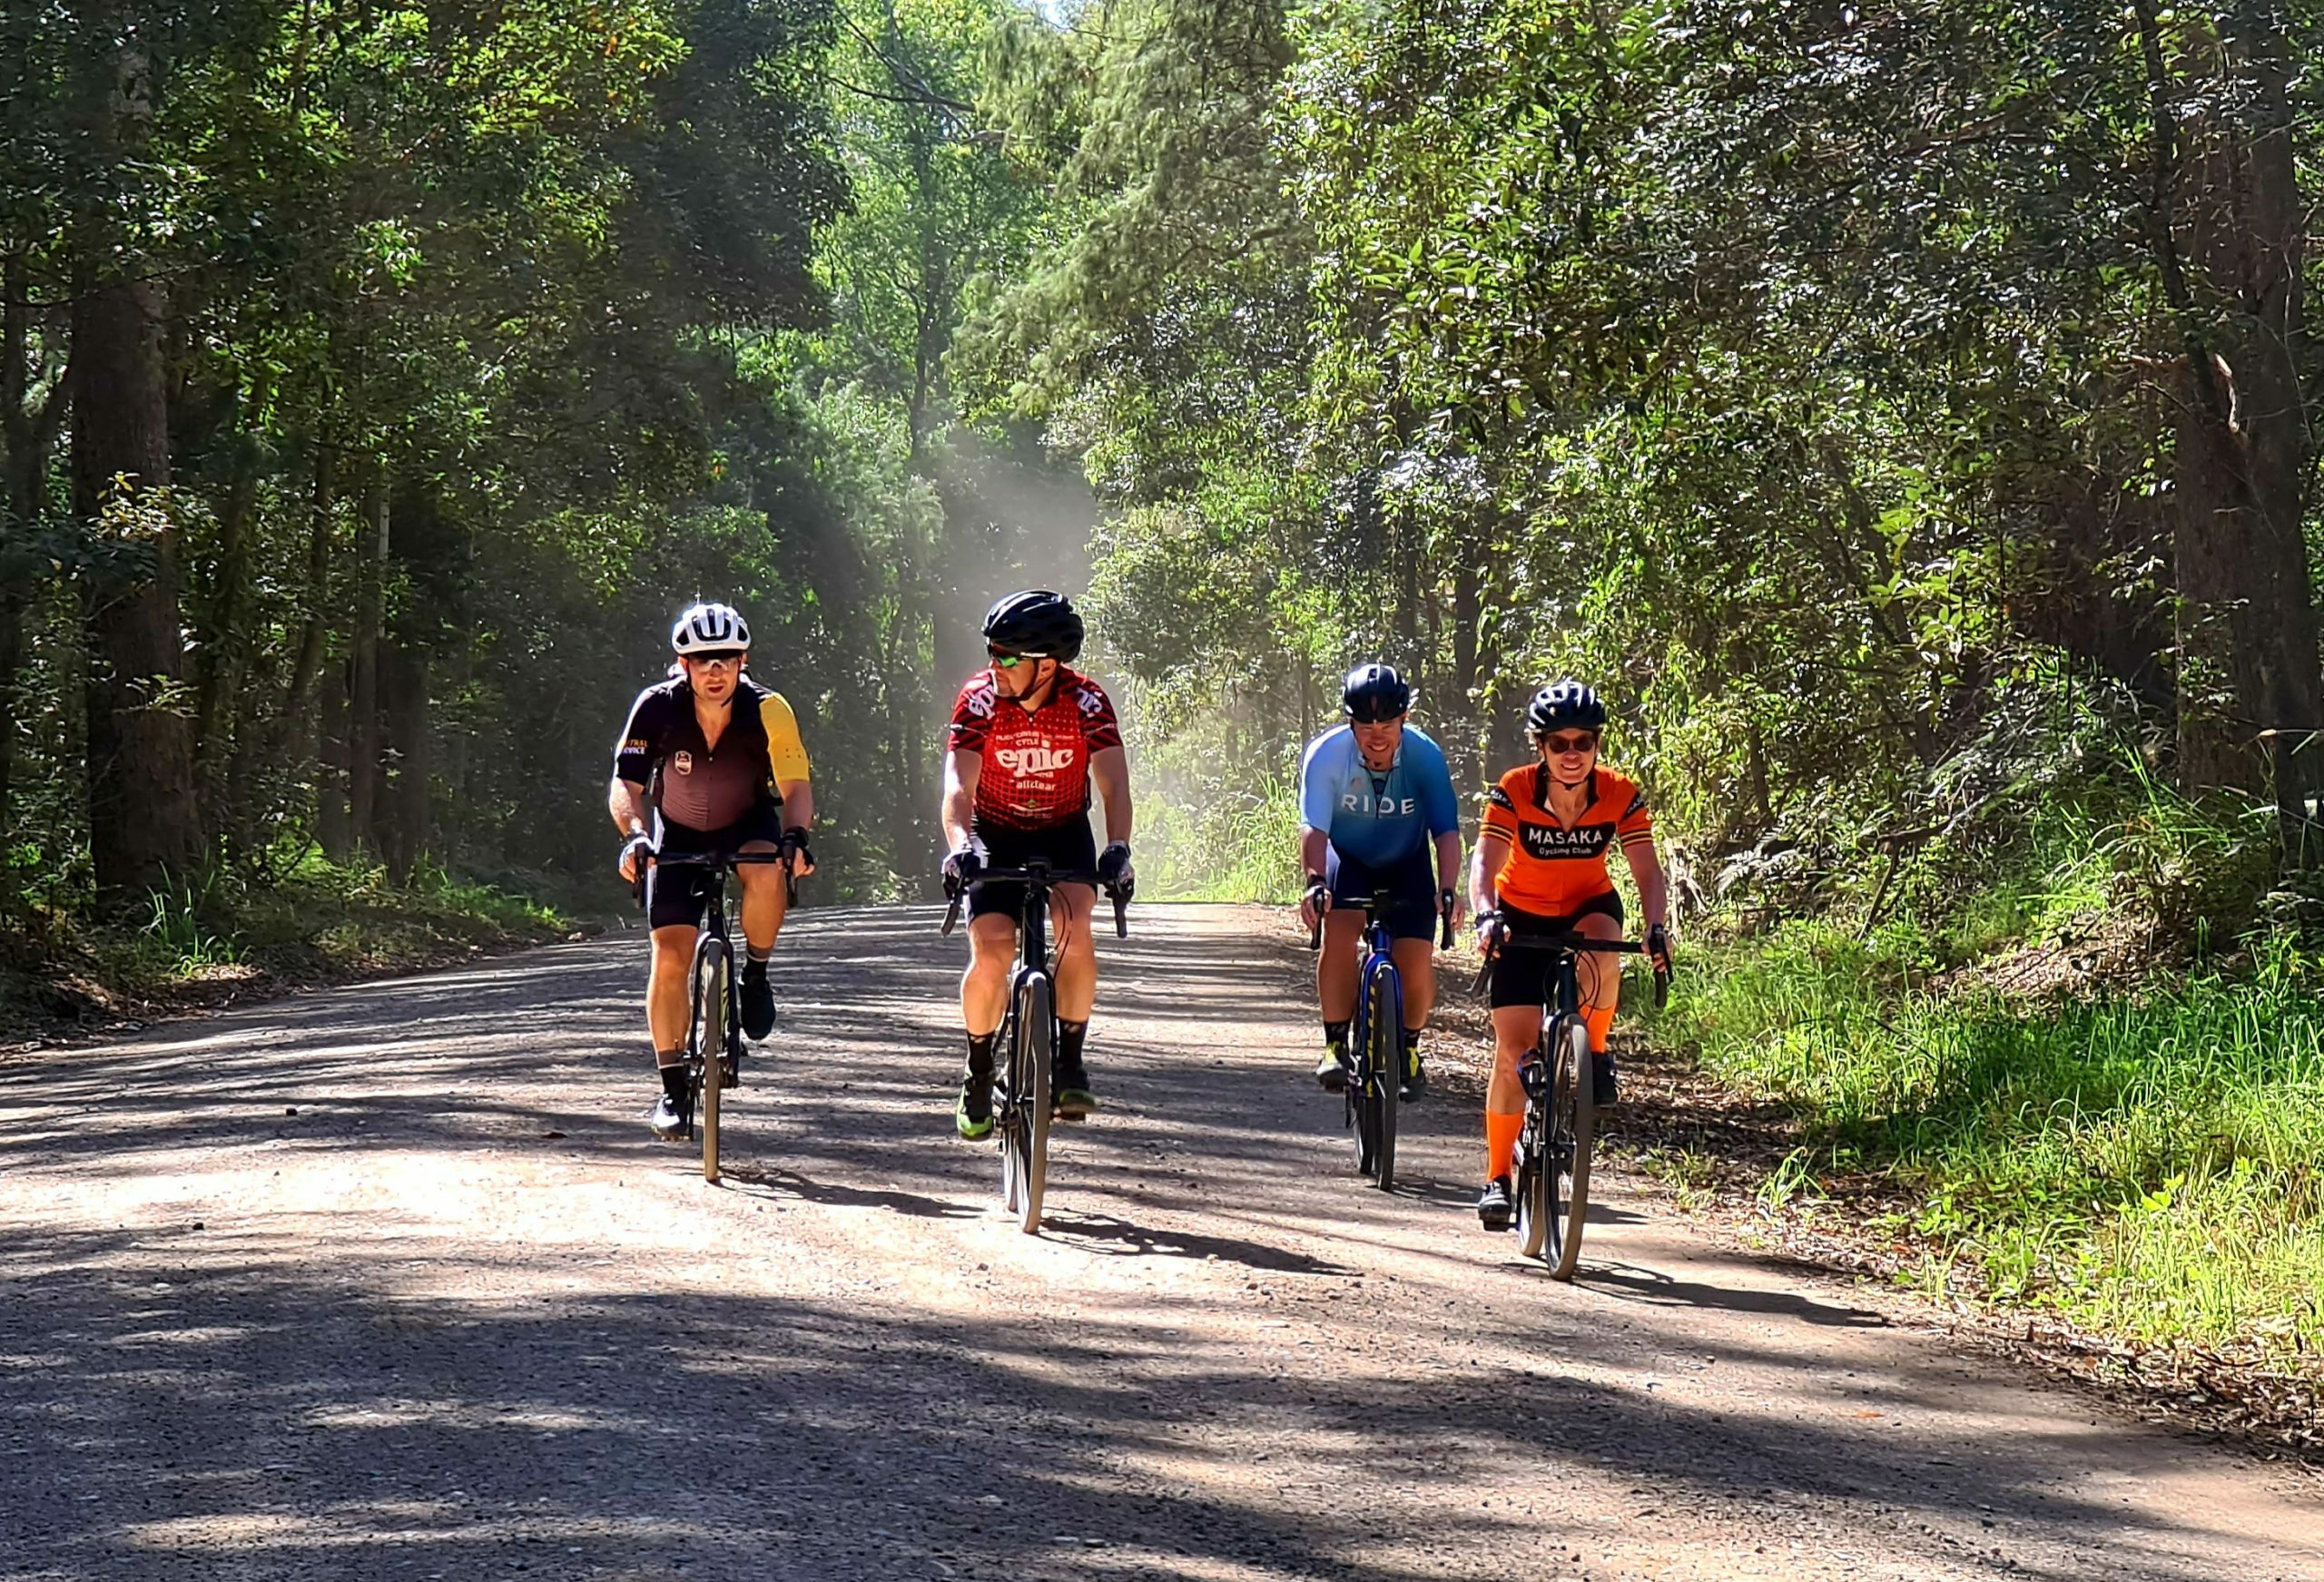 Gravel cyclists on the Noosa Gravel Camp